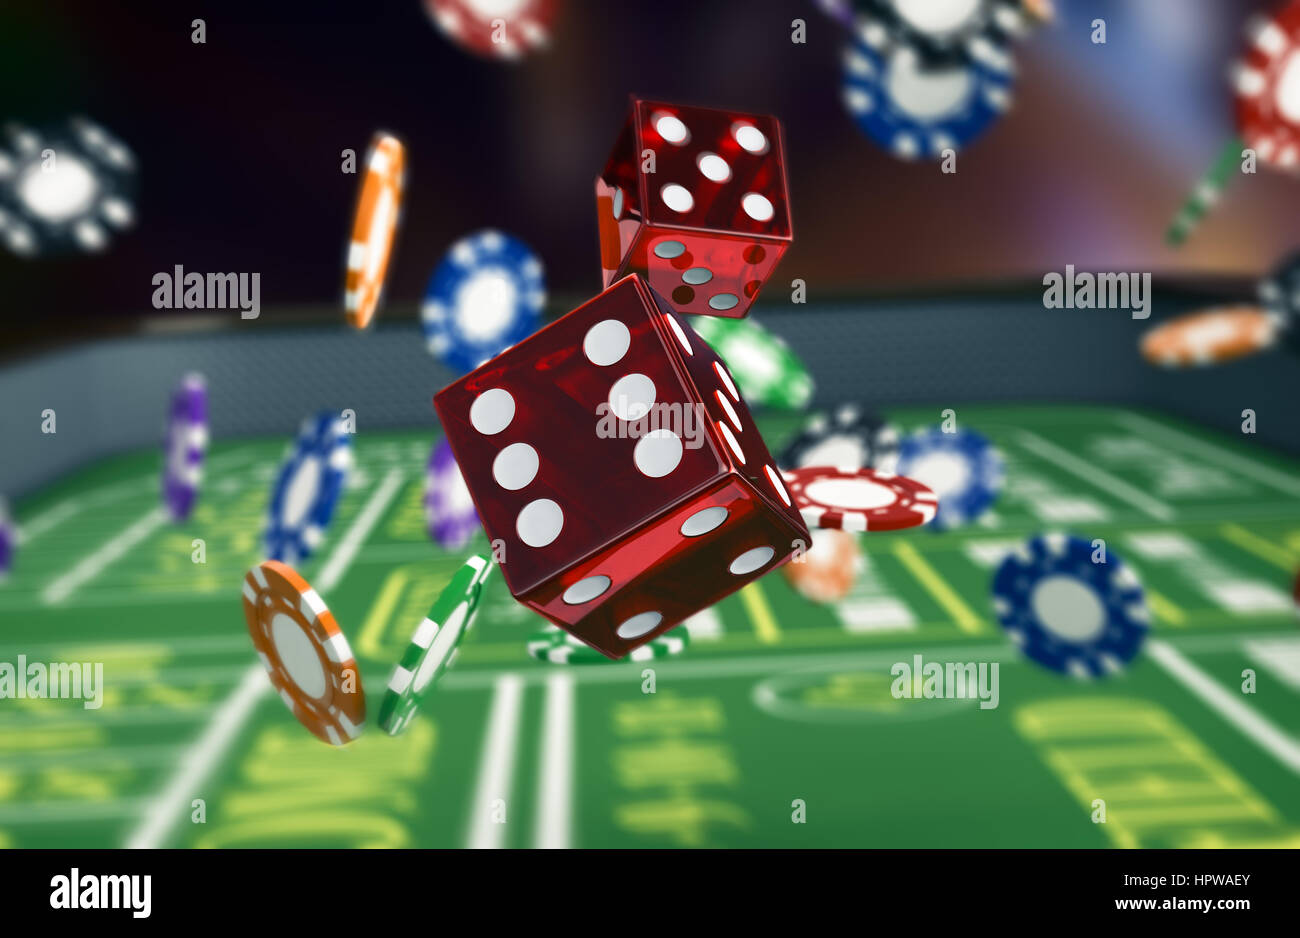 close up view of a craps table with dices and fiches (3d render) - Stock Image